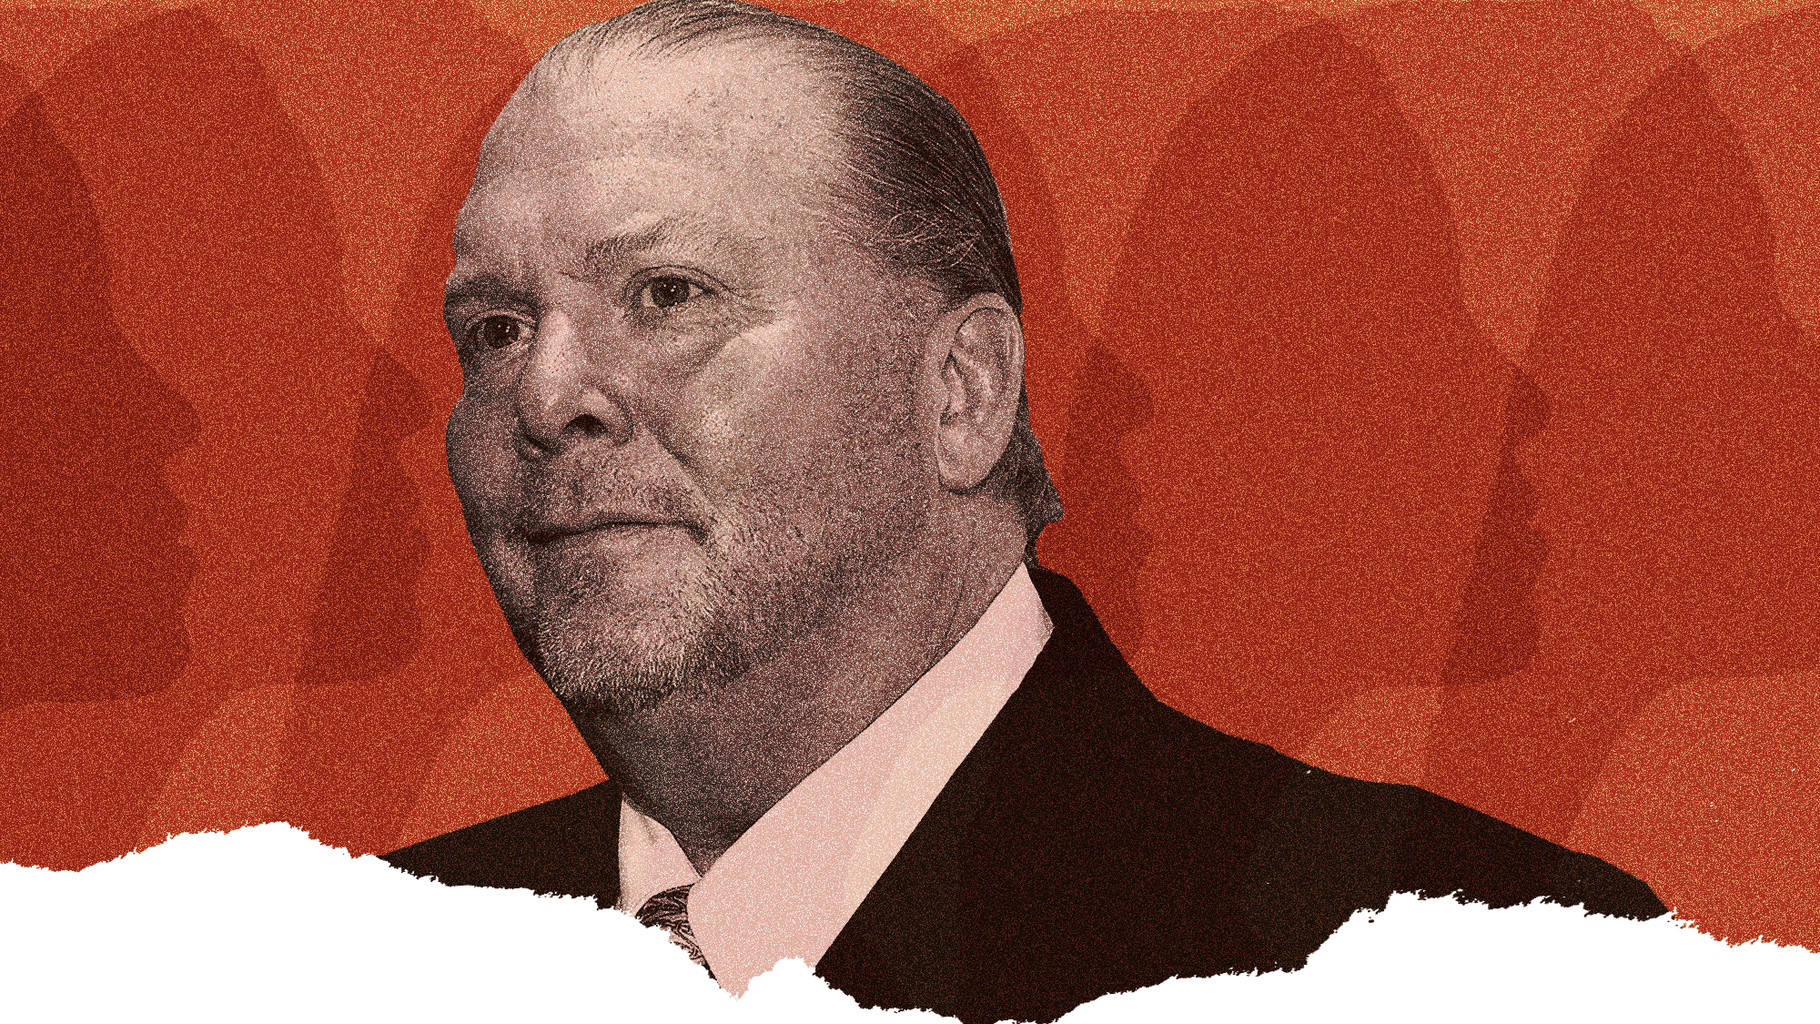 Mario Batalil accused by 4 women